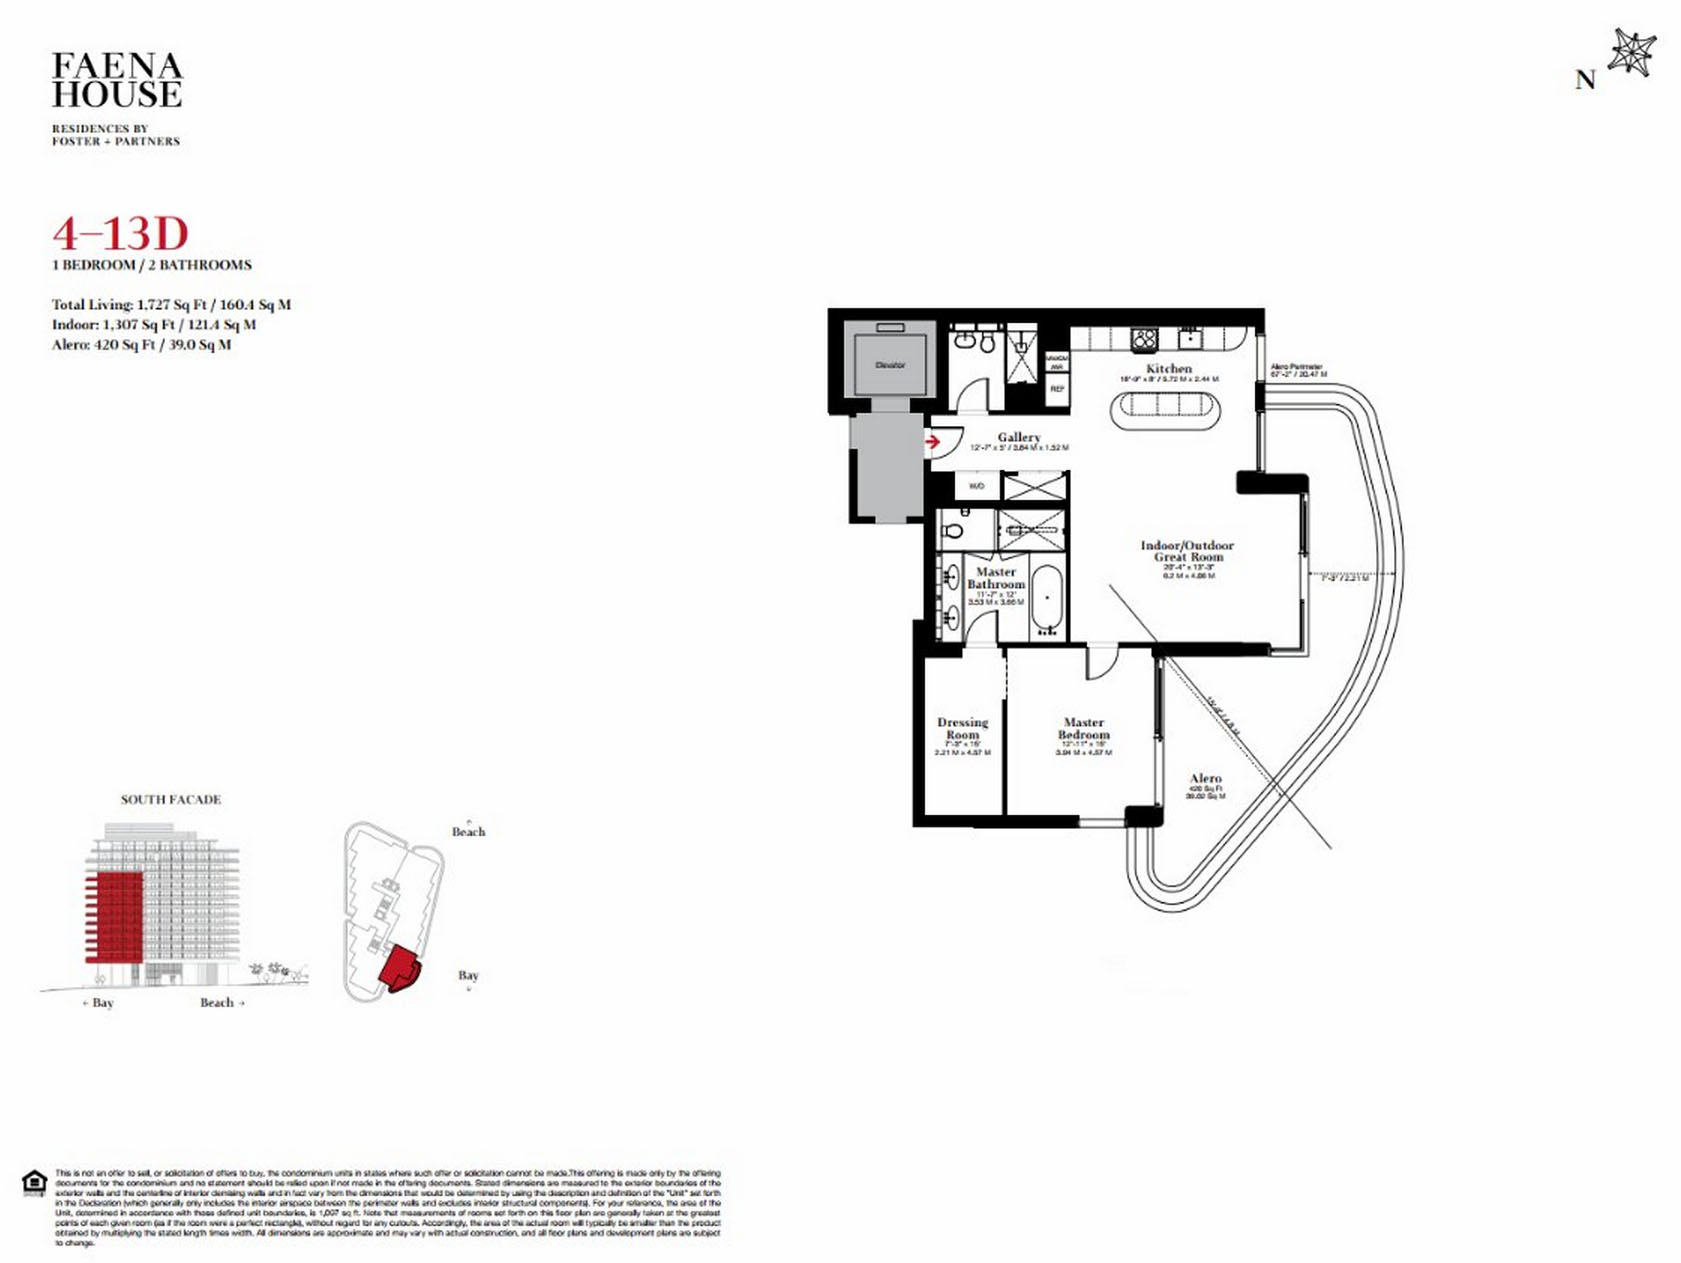 Faena House - Floorplan 1